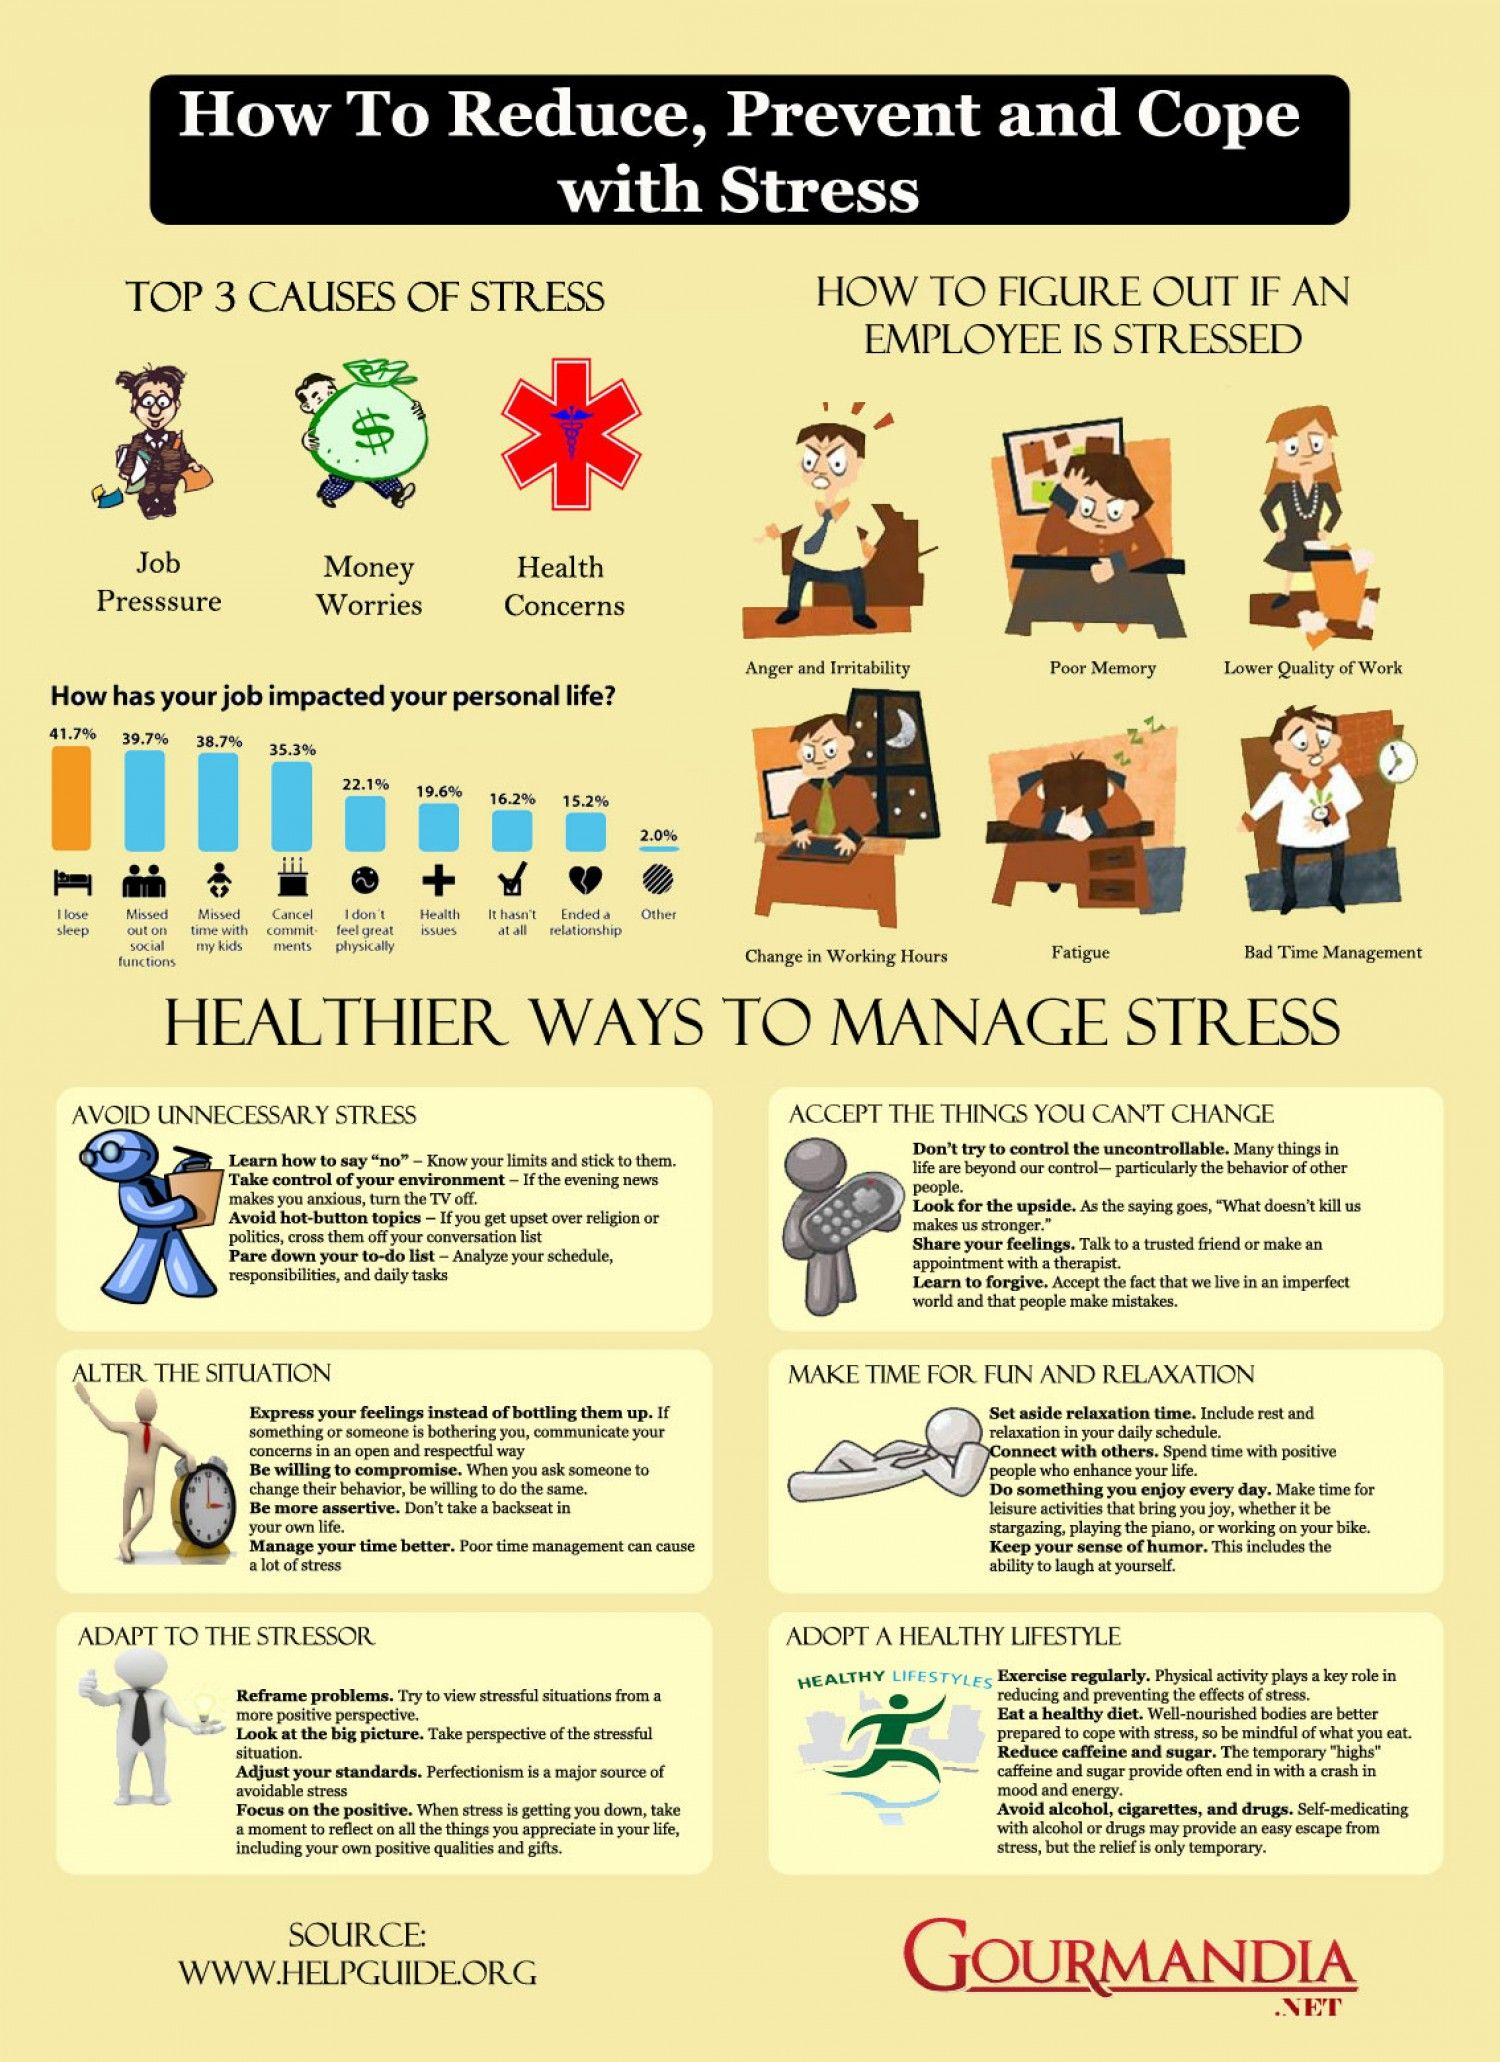 10 Simple Ways to Relieve Stress